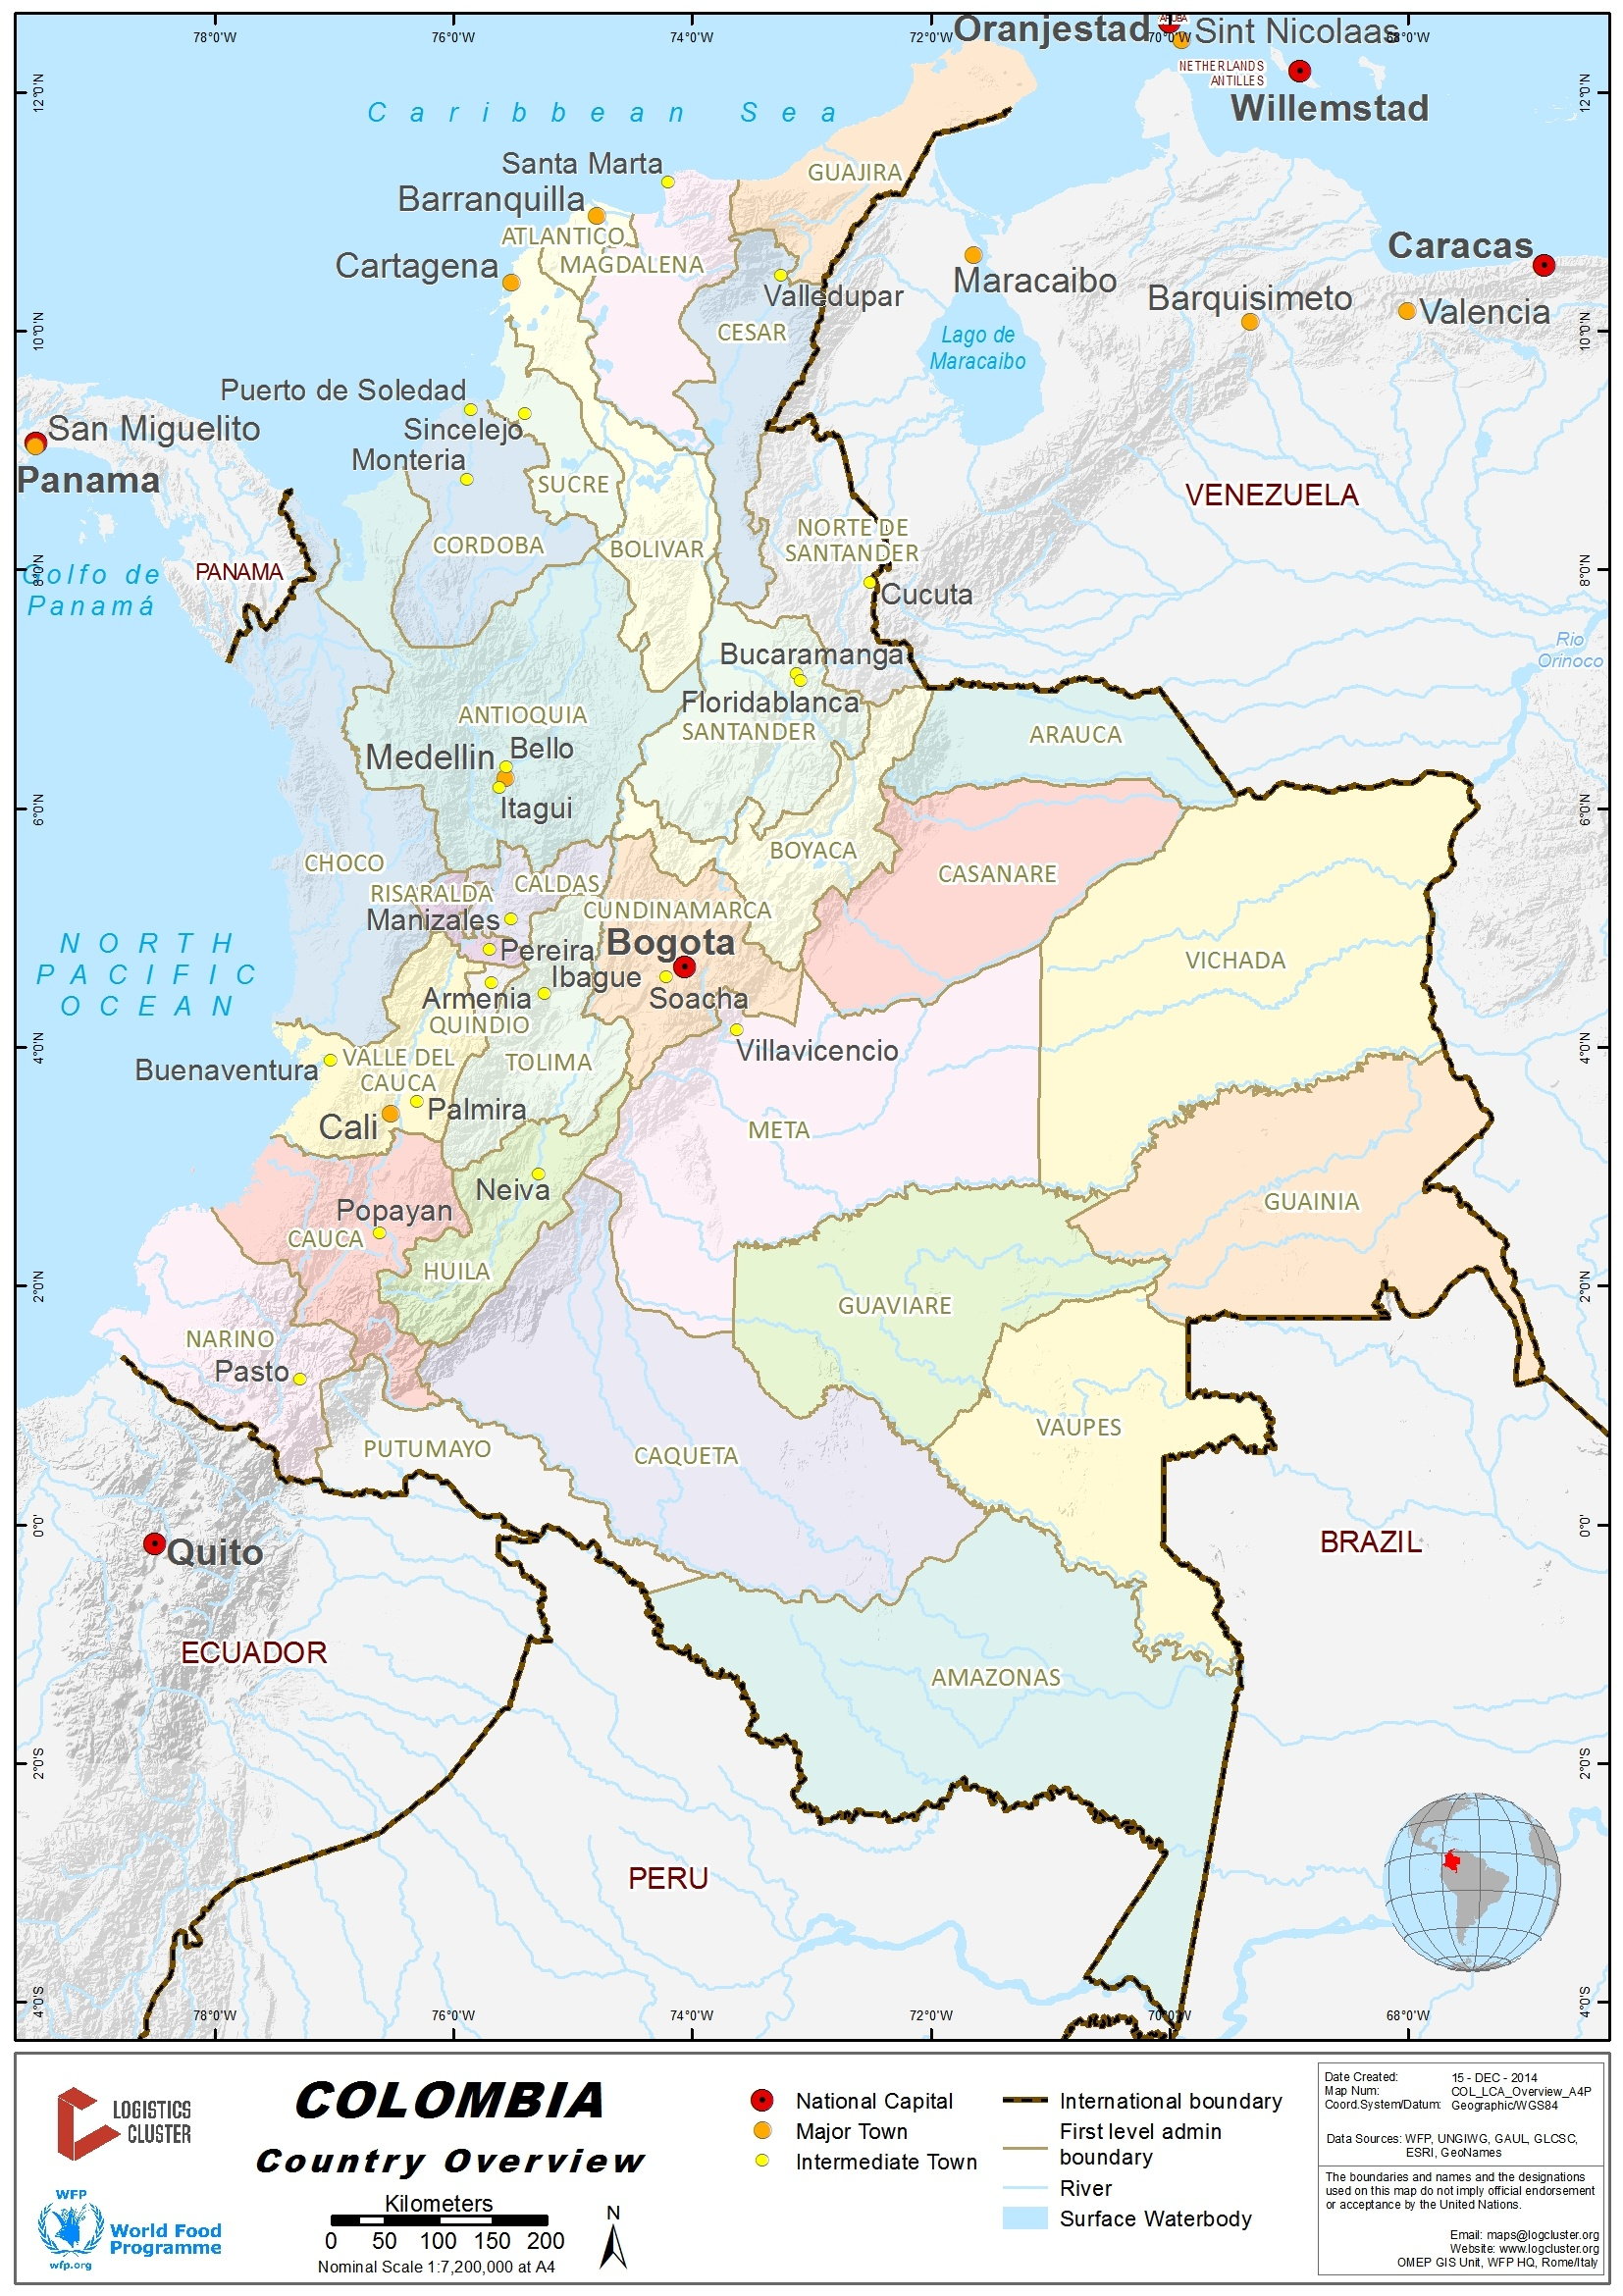 an overview of the country of colombia The making of modern colombia by david bushnell was a good place to start it  provides a good summary of the history of the country starting from original.